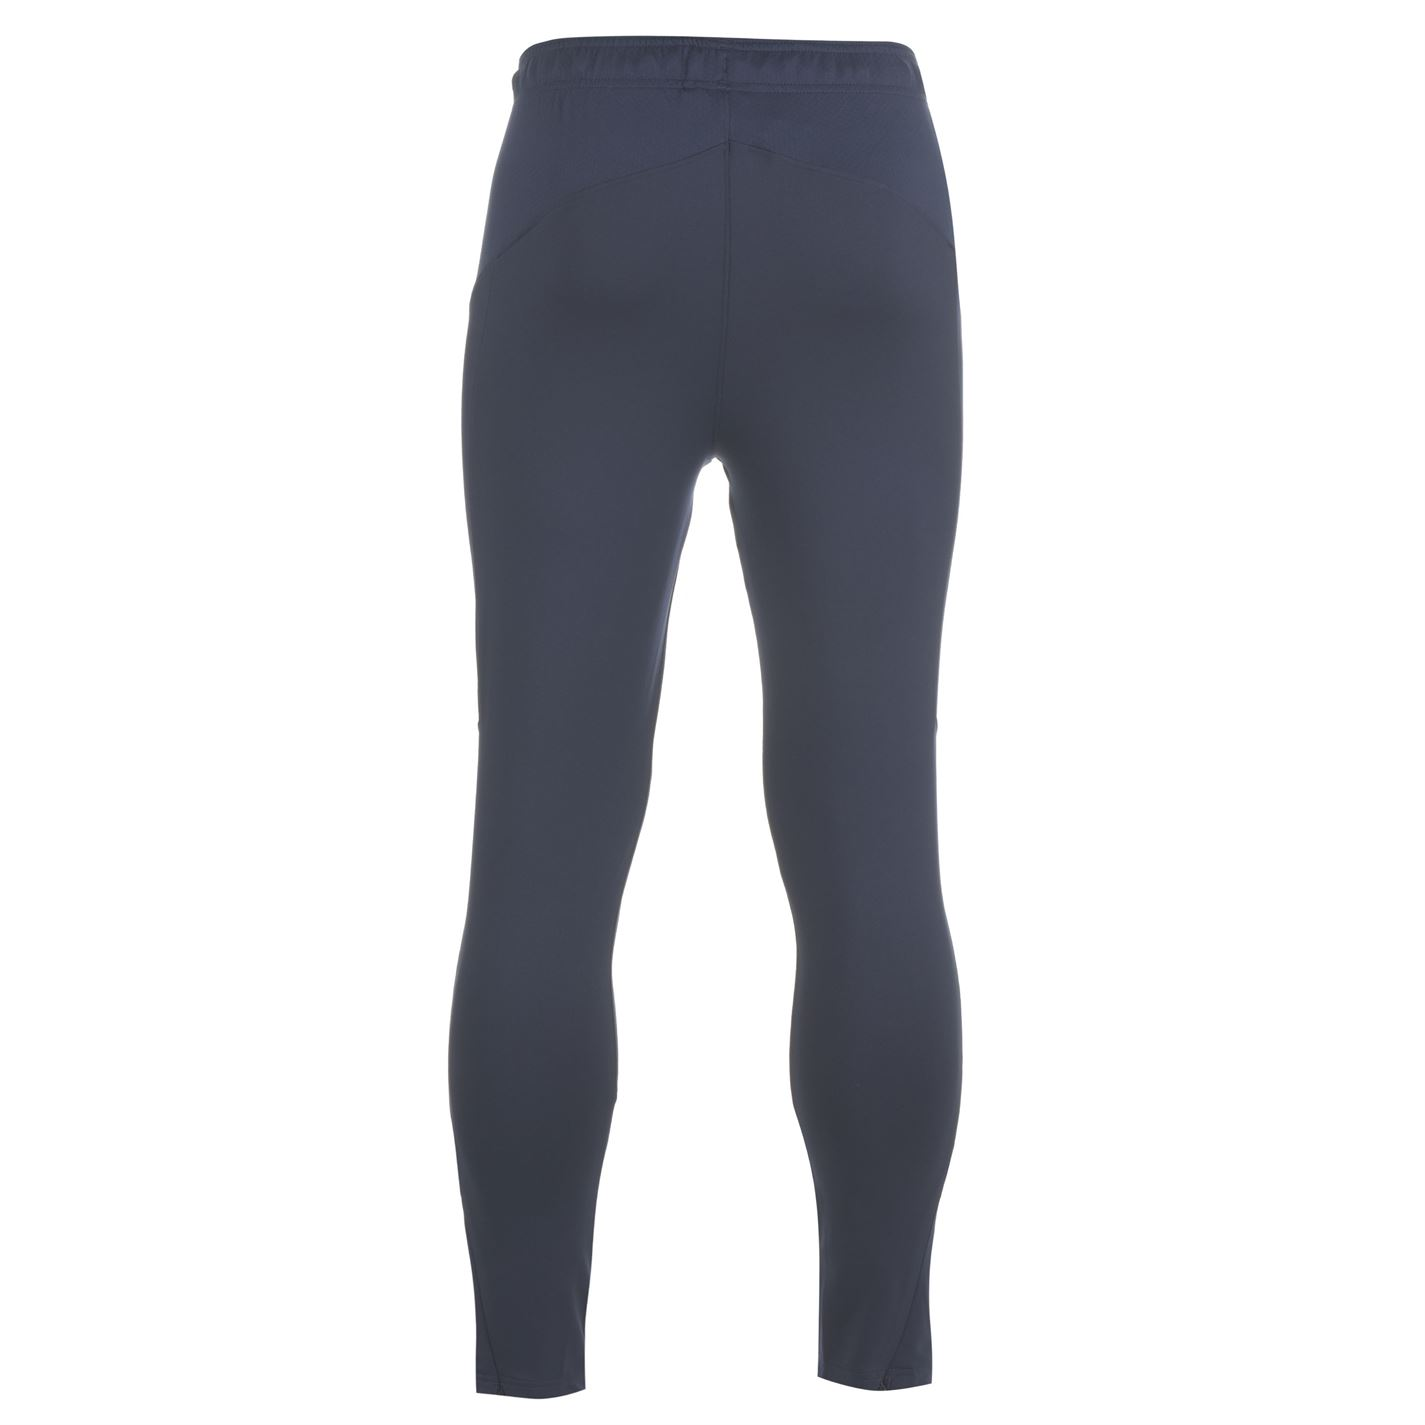 350b580be8a15 Under Armour Mens Challenger Knit Trousers Performance Tracksuit ...